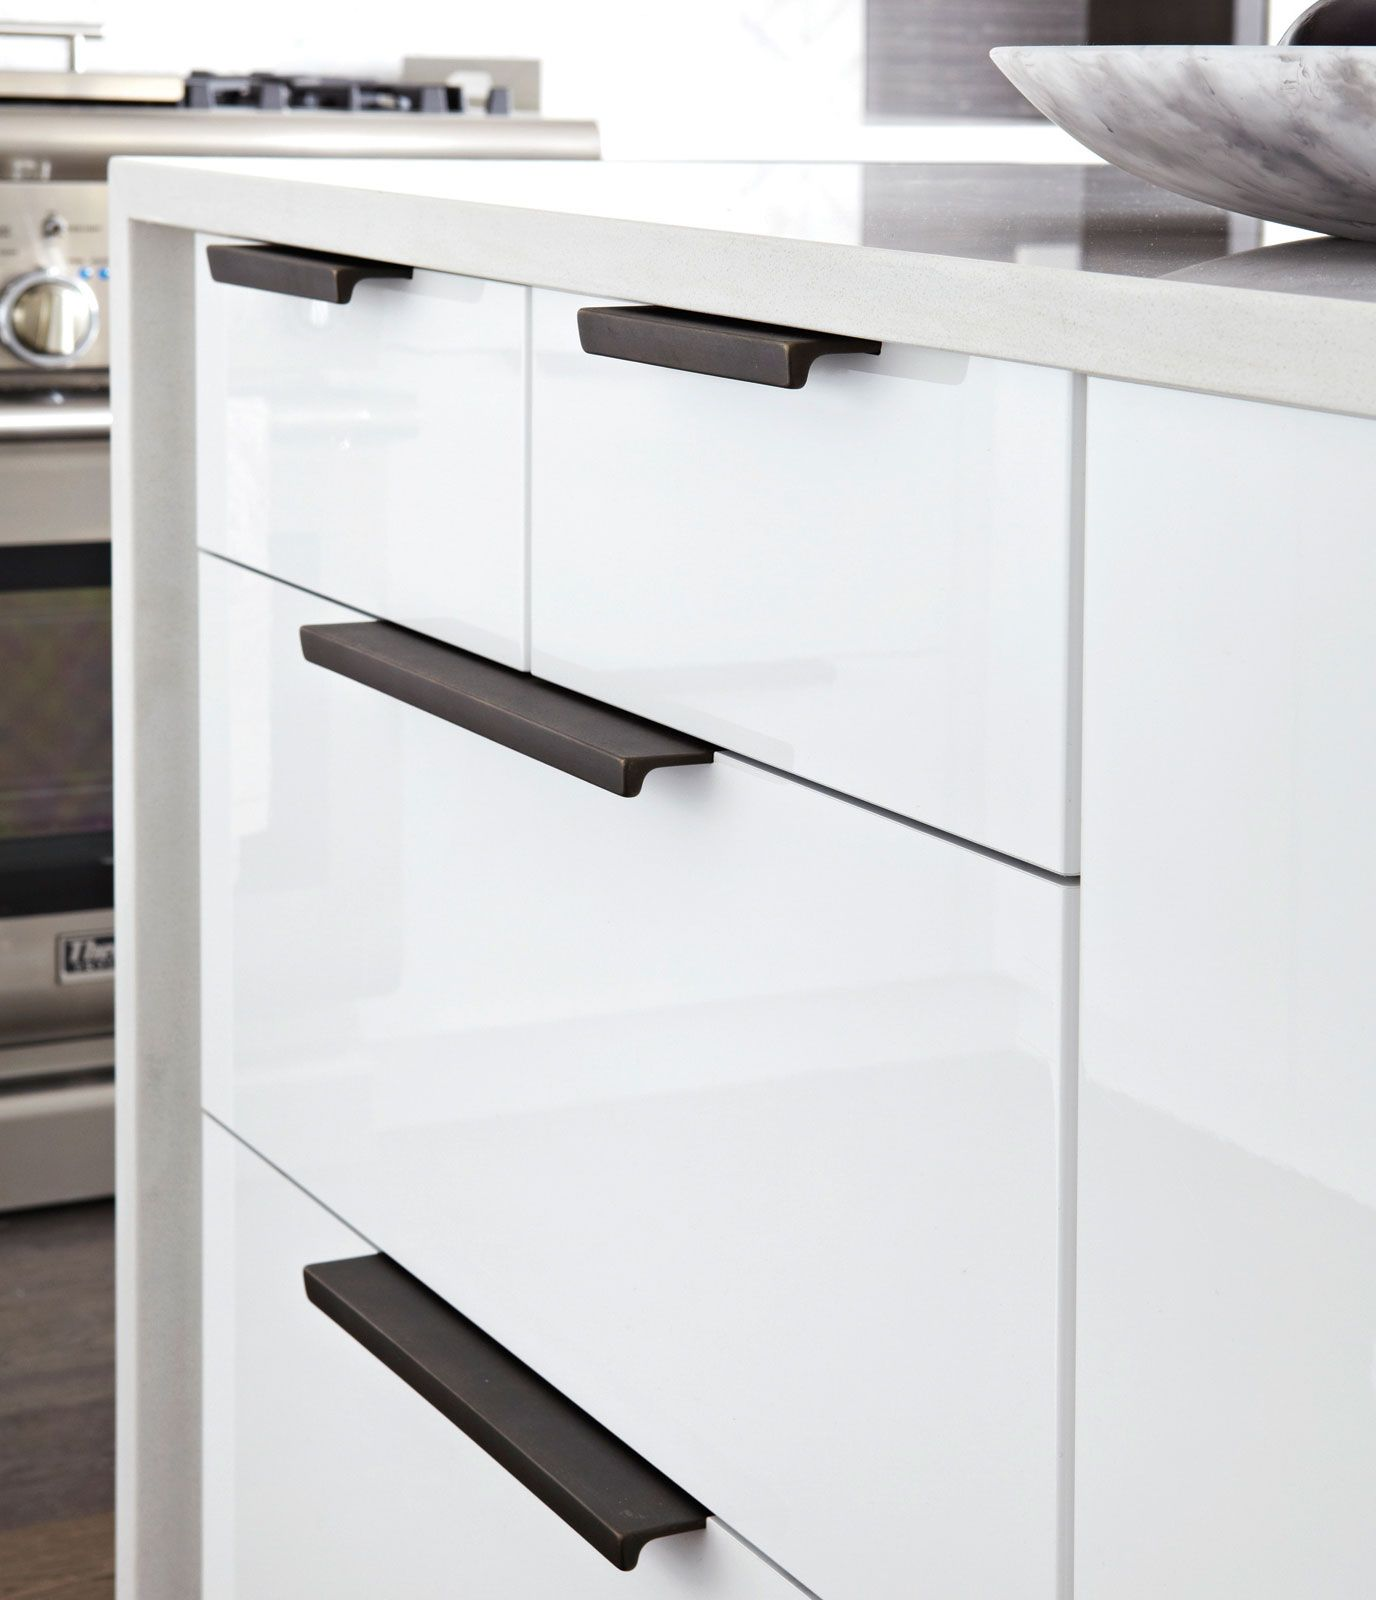 Cabinet Hardware Gallery Kitchen Handles Contemporary Kitchen Contemporary Kitchen Cabinets